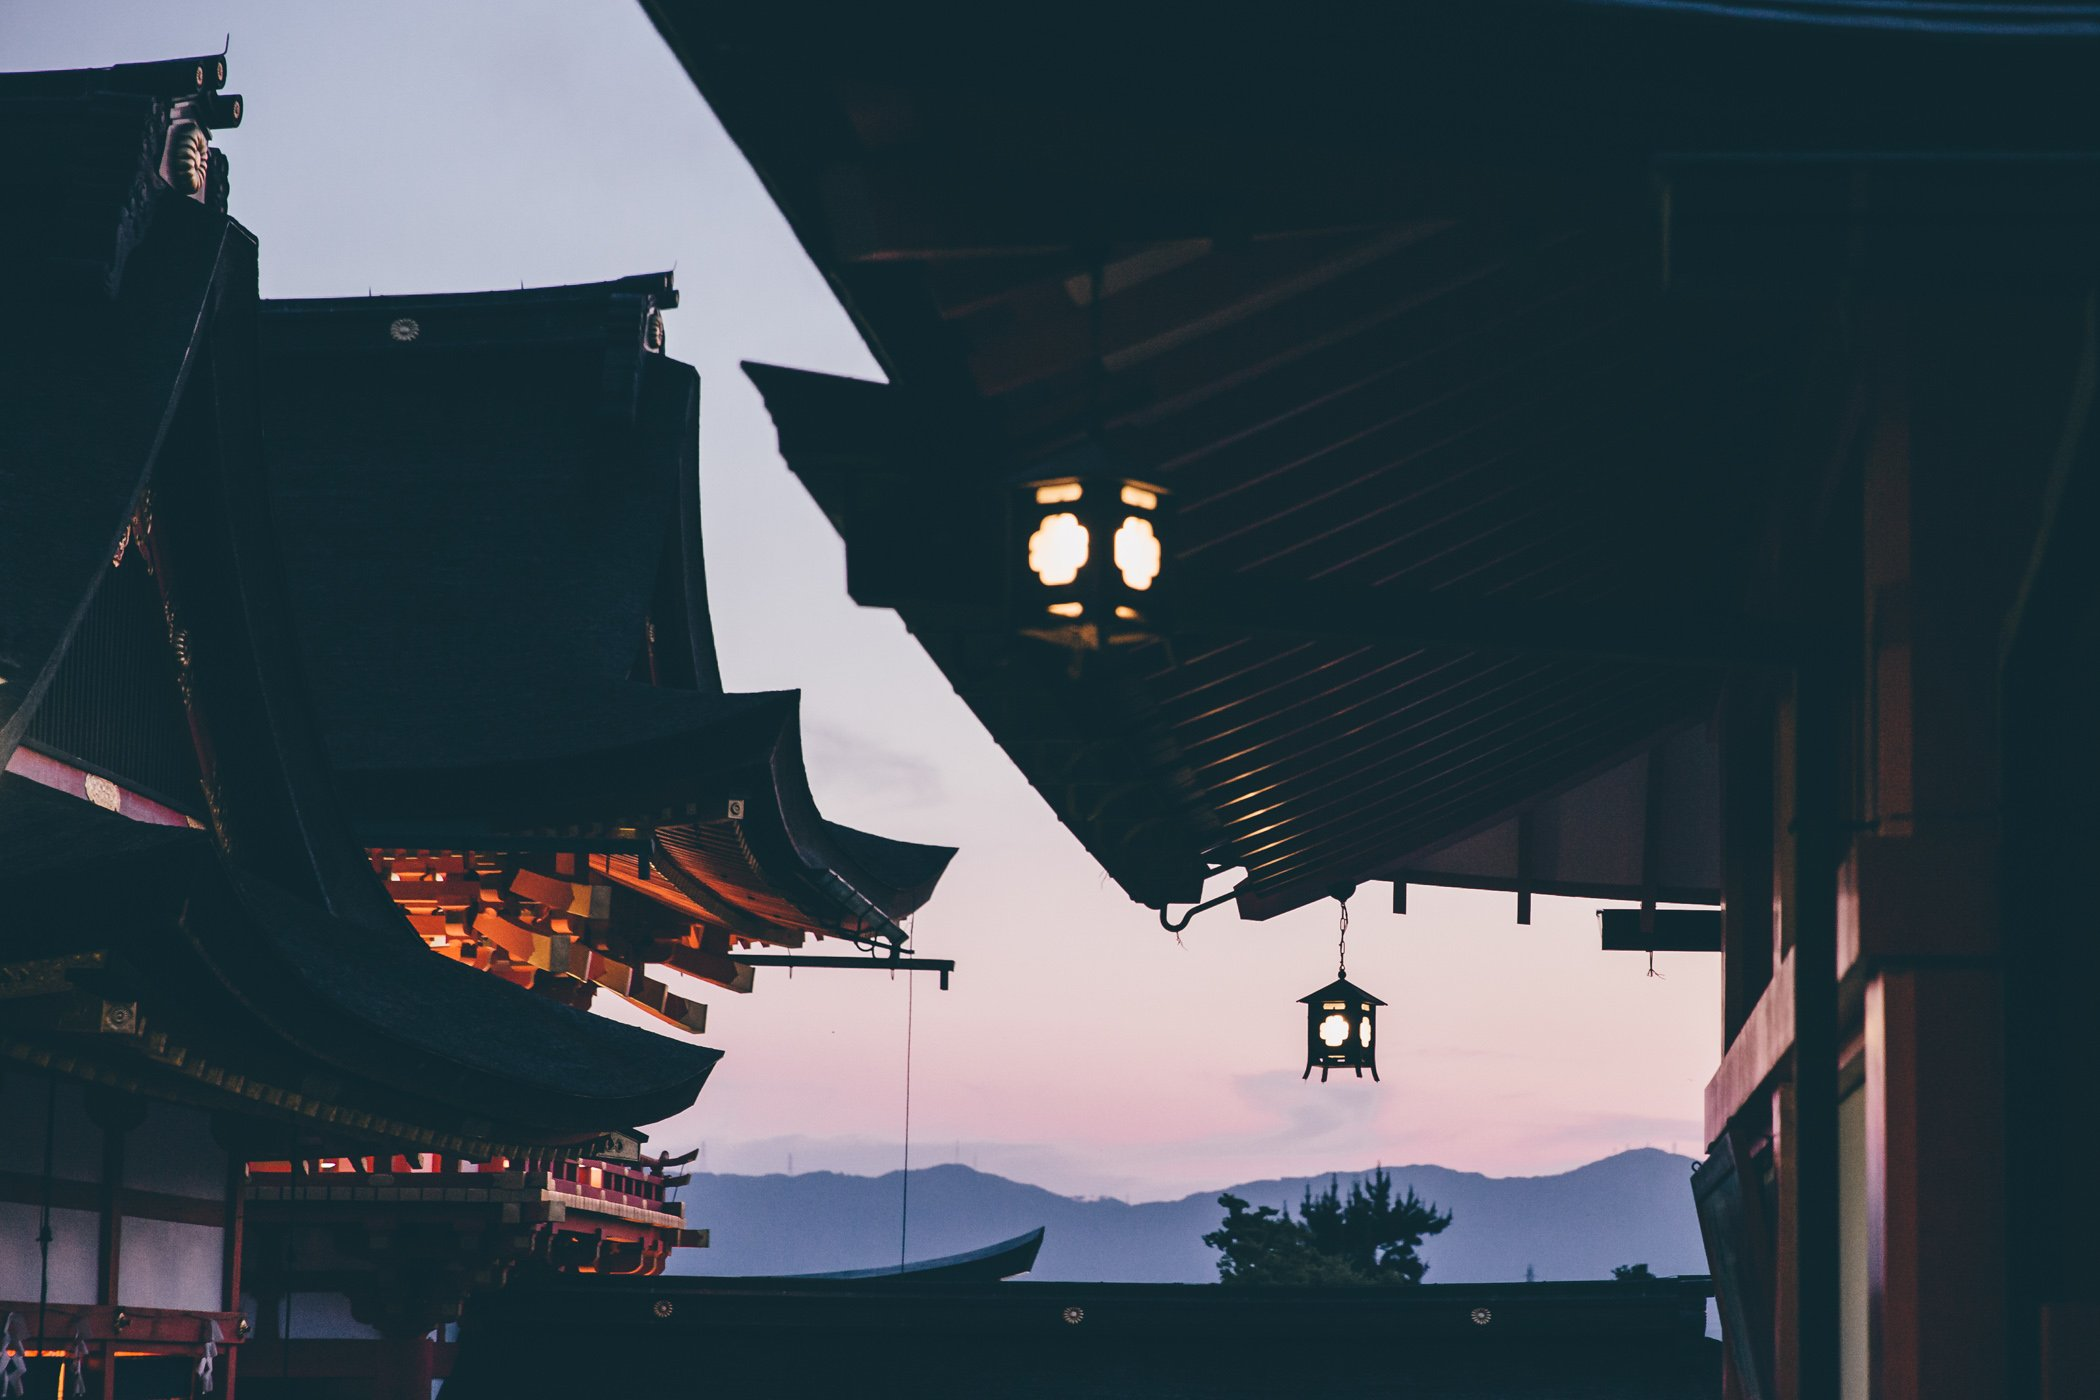 Sunset over Kyoto as seen from Fushimi Inari-Taisha